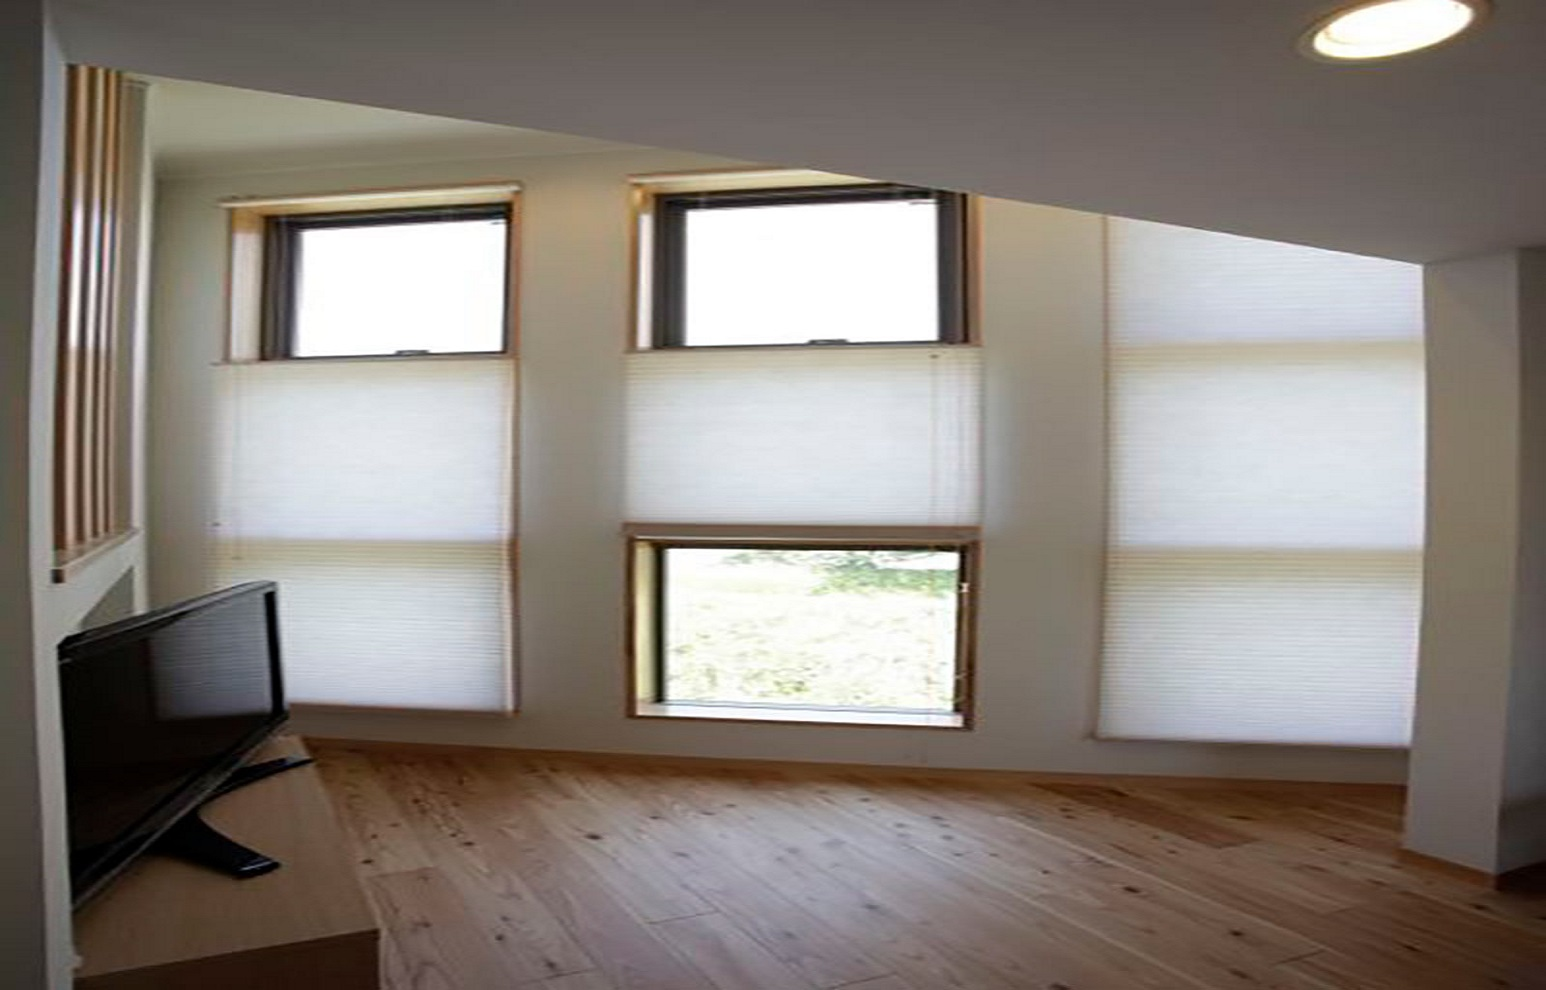 Style of Blinds